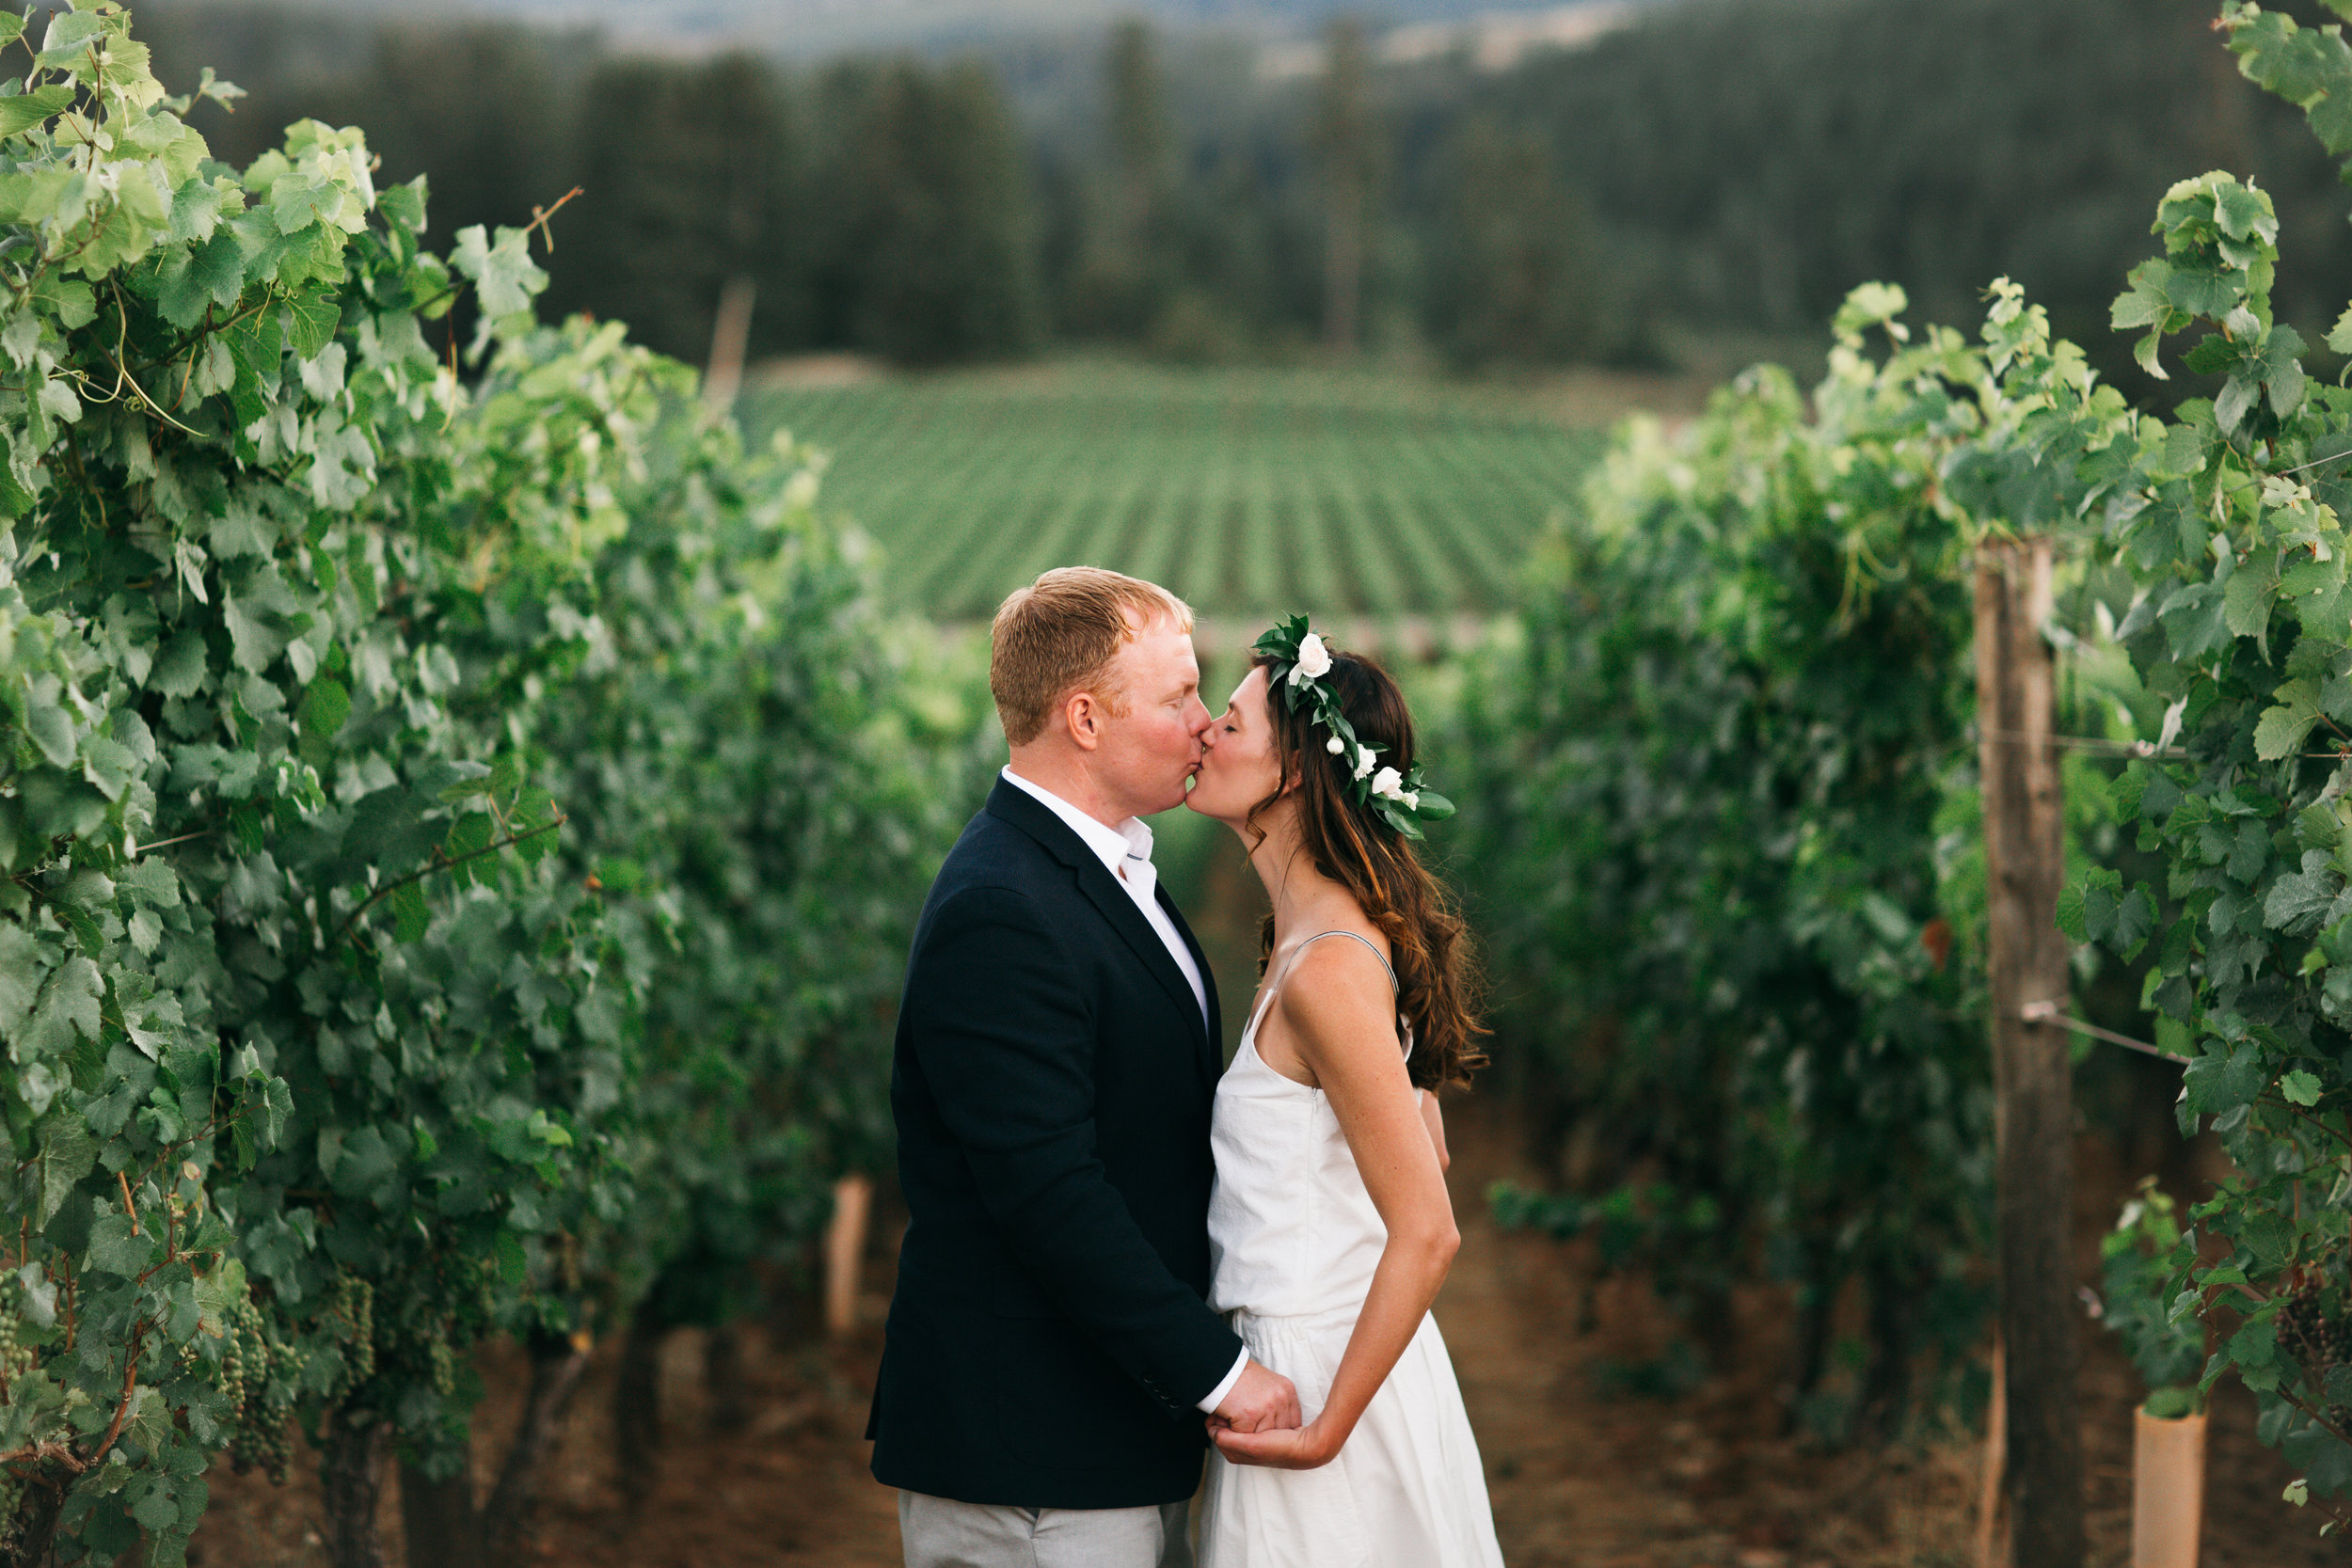 Bridalbliss.com | Eugene Wedding | Oregon Event Planning and Design | Lovelit Photography